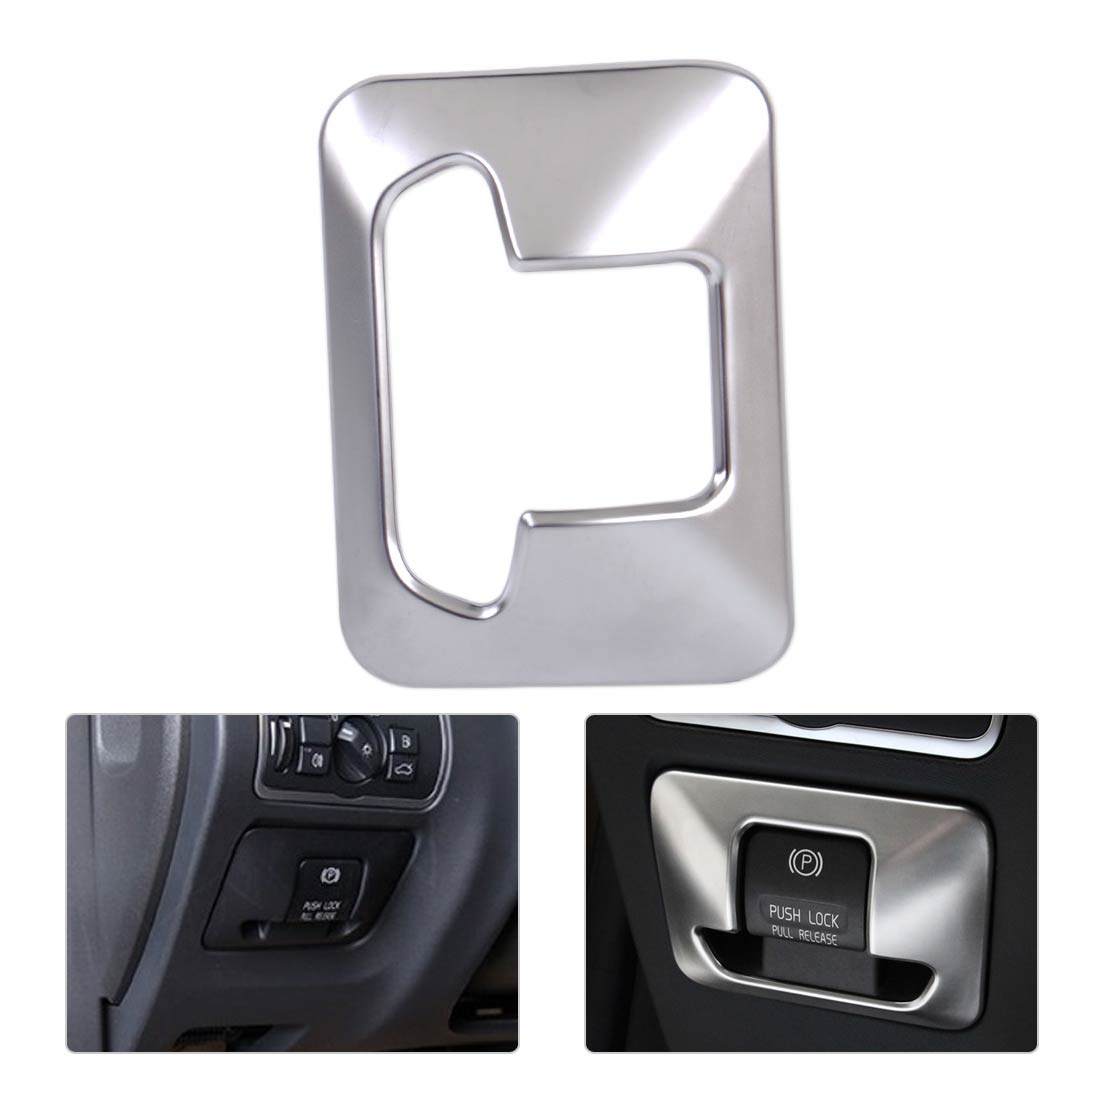 Car Styling Chrome Plated Electronic Handbrake Button Panel Trim Cover fit for Volvo XC60 V60 XC70 S60 S80 2010 - 2013 2014 2015 new high quality electric kettle 304 stainless steel kettles home cooking automatic blackouts safety auto off function